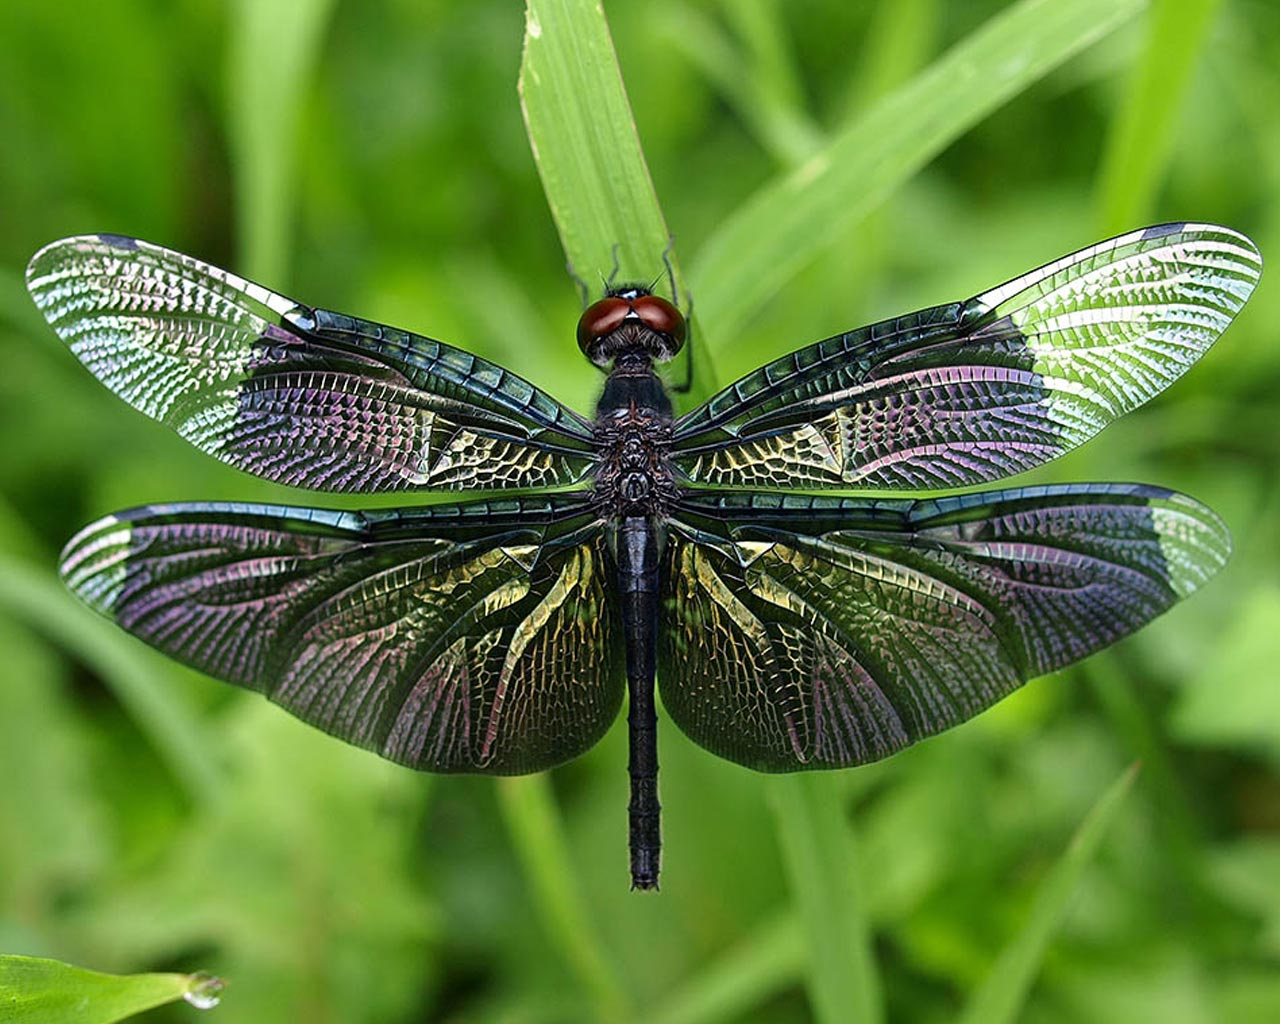 Insects hd wallpaper, high resolution wallpaper ...